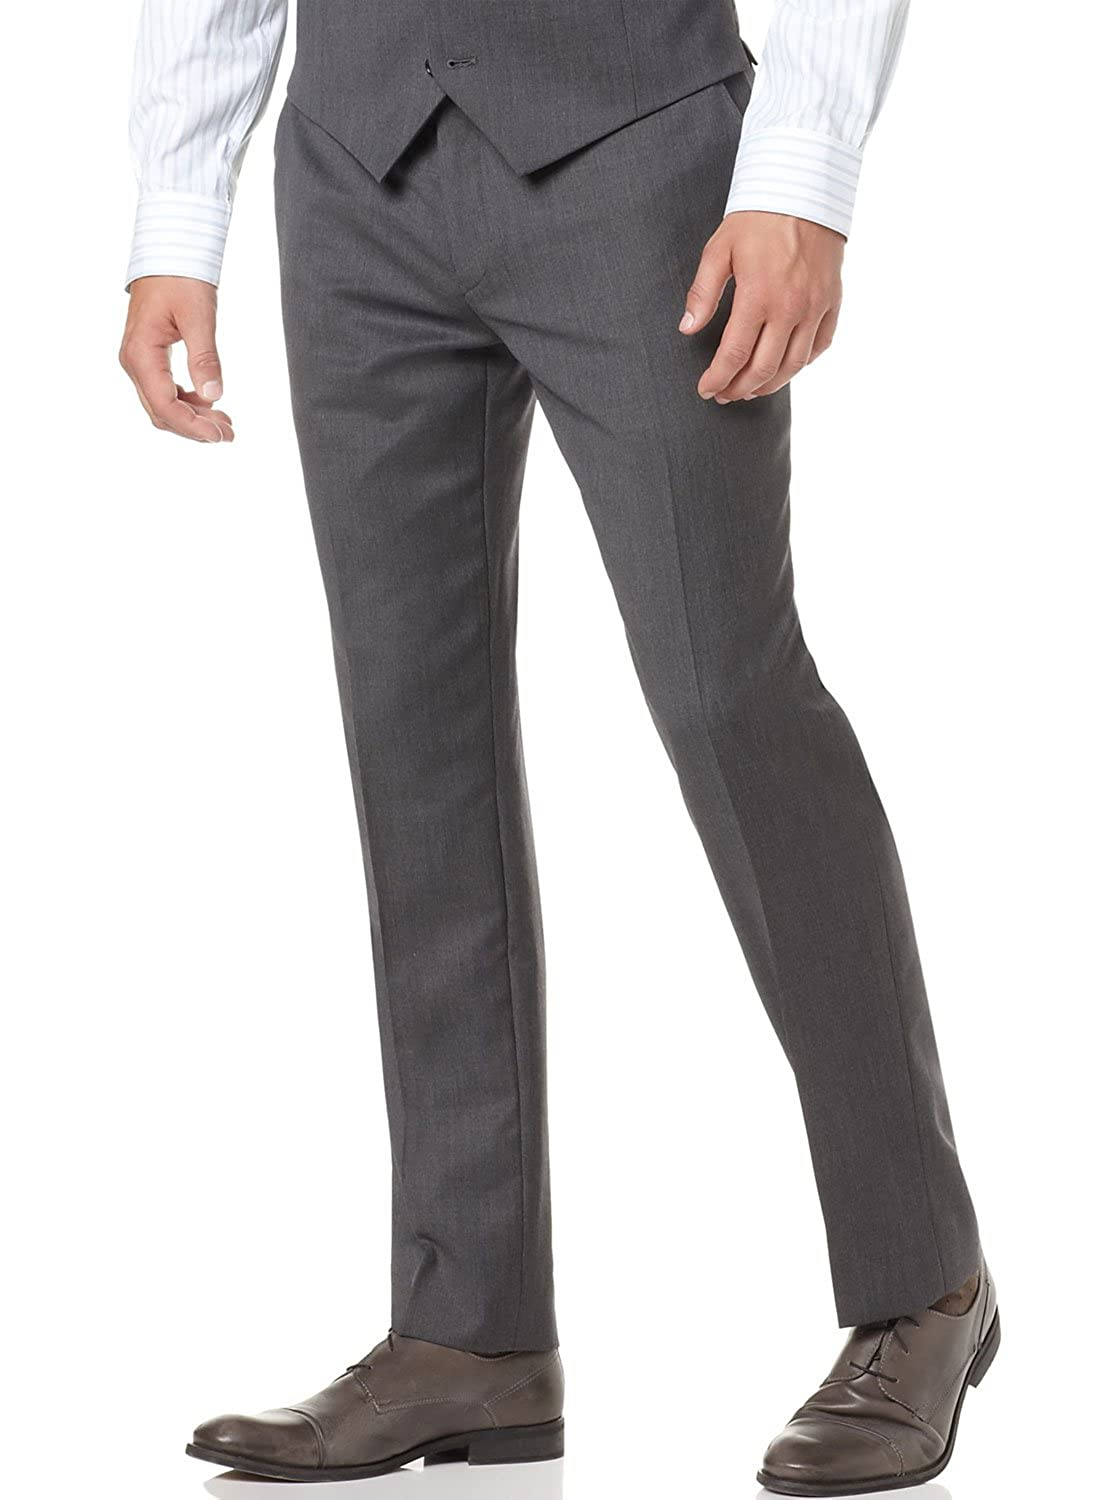 Delve into the latest trends with our men's skinny trousers, designed in a perfect skinny fit. Next day delivery and free returns available. Men's suits Trousers Skinny. Items Per Page. Sort By Black Skinny Fit Suit. £ Navy Skinny Fit Suit. £ Navy Tailored Fit Suit. £ Black Tailored Fit Suit.